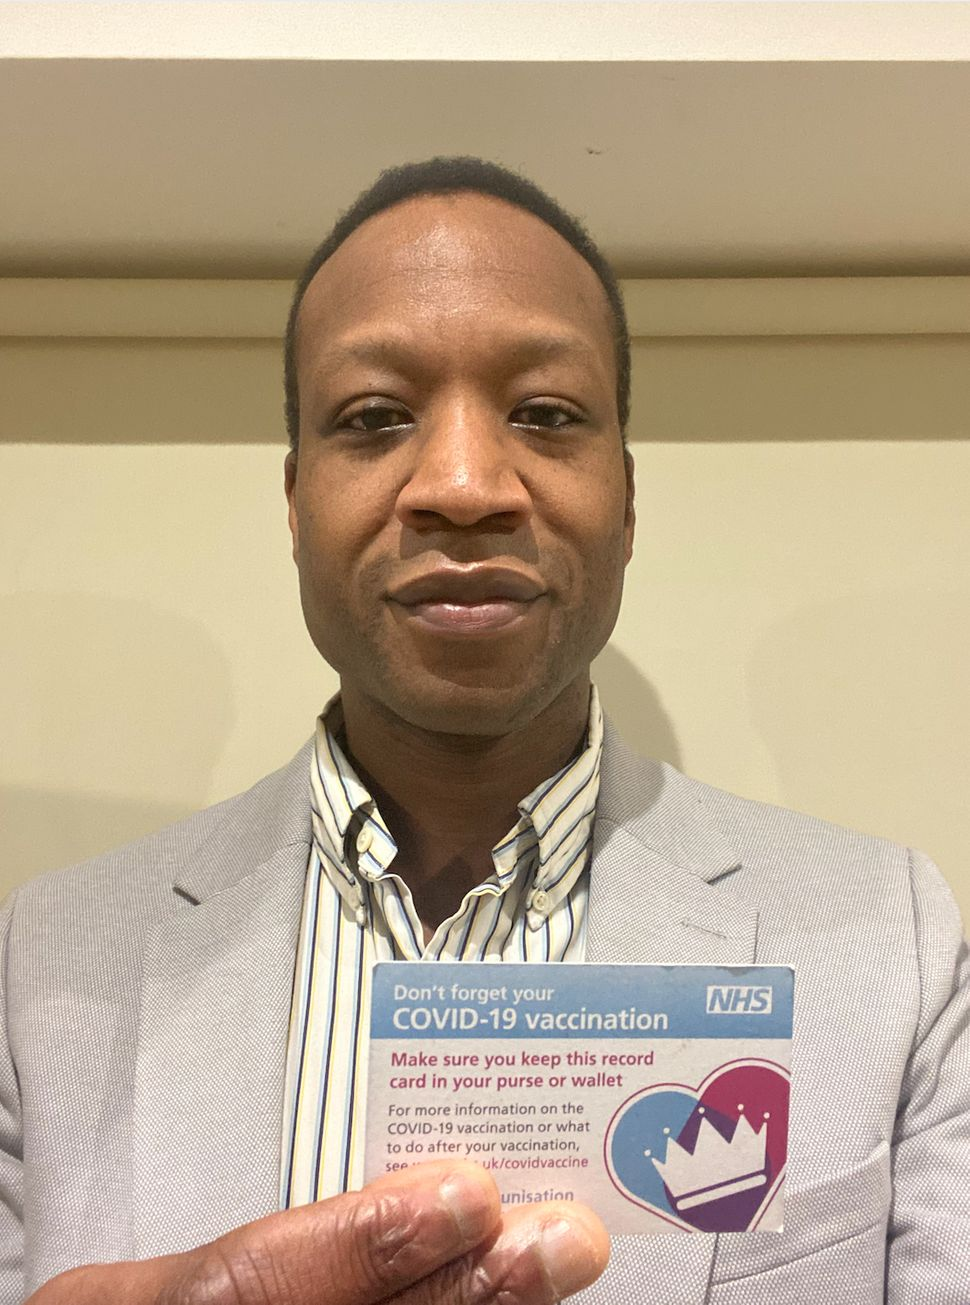 """Dr Abdul Zubairu: """"To anyone who is hesitant or unsure: speak to a healthcare professional and then make an informed decision"""